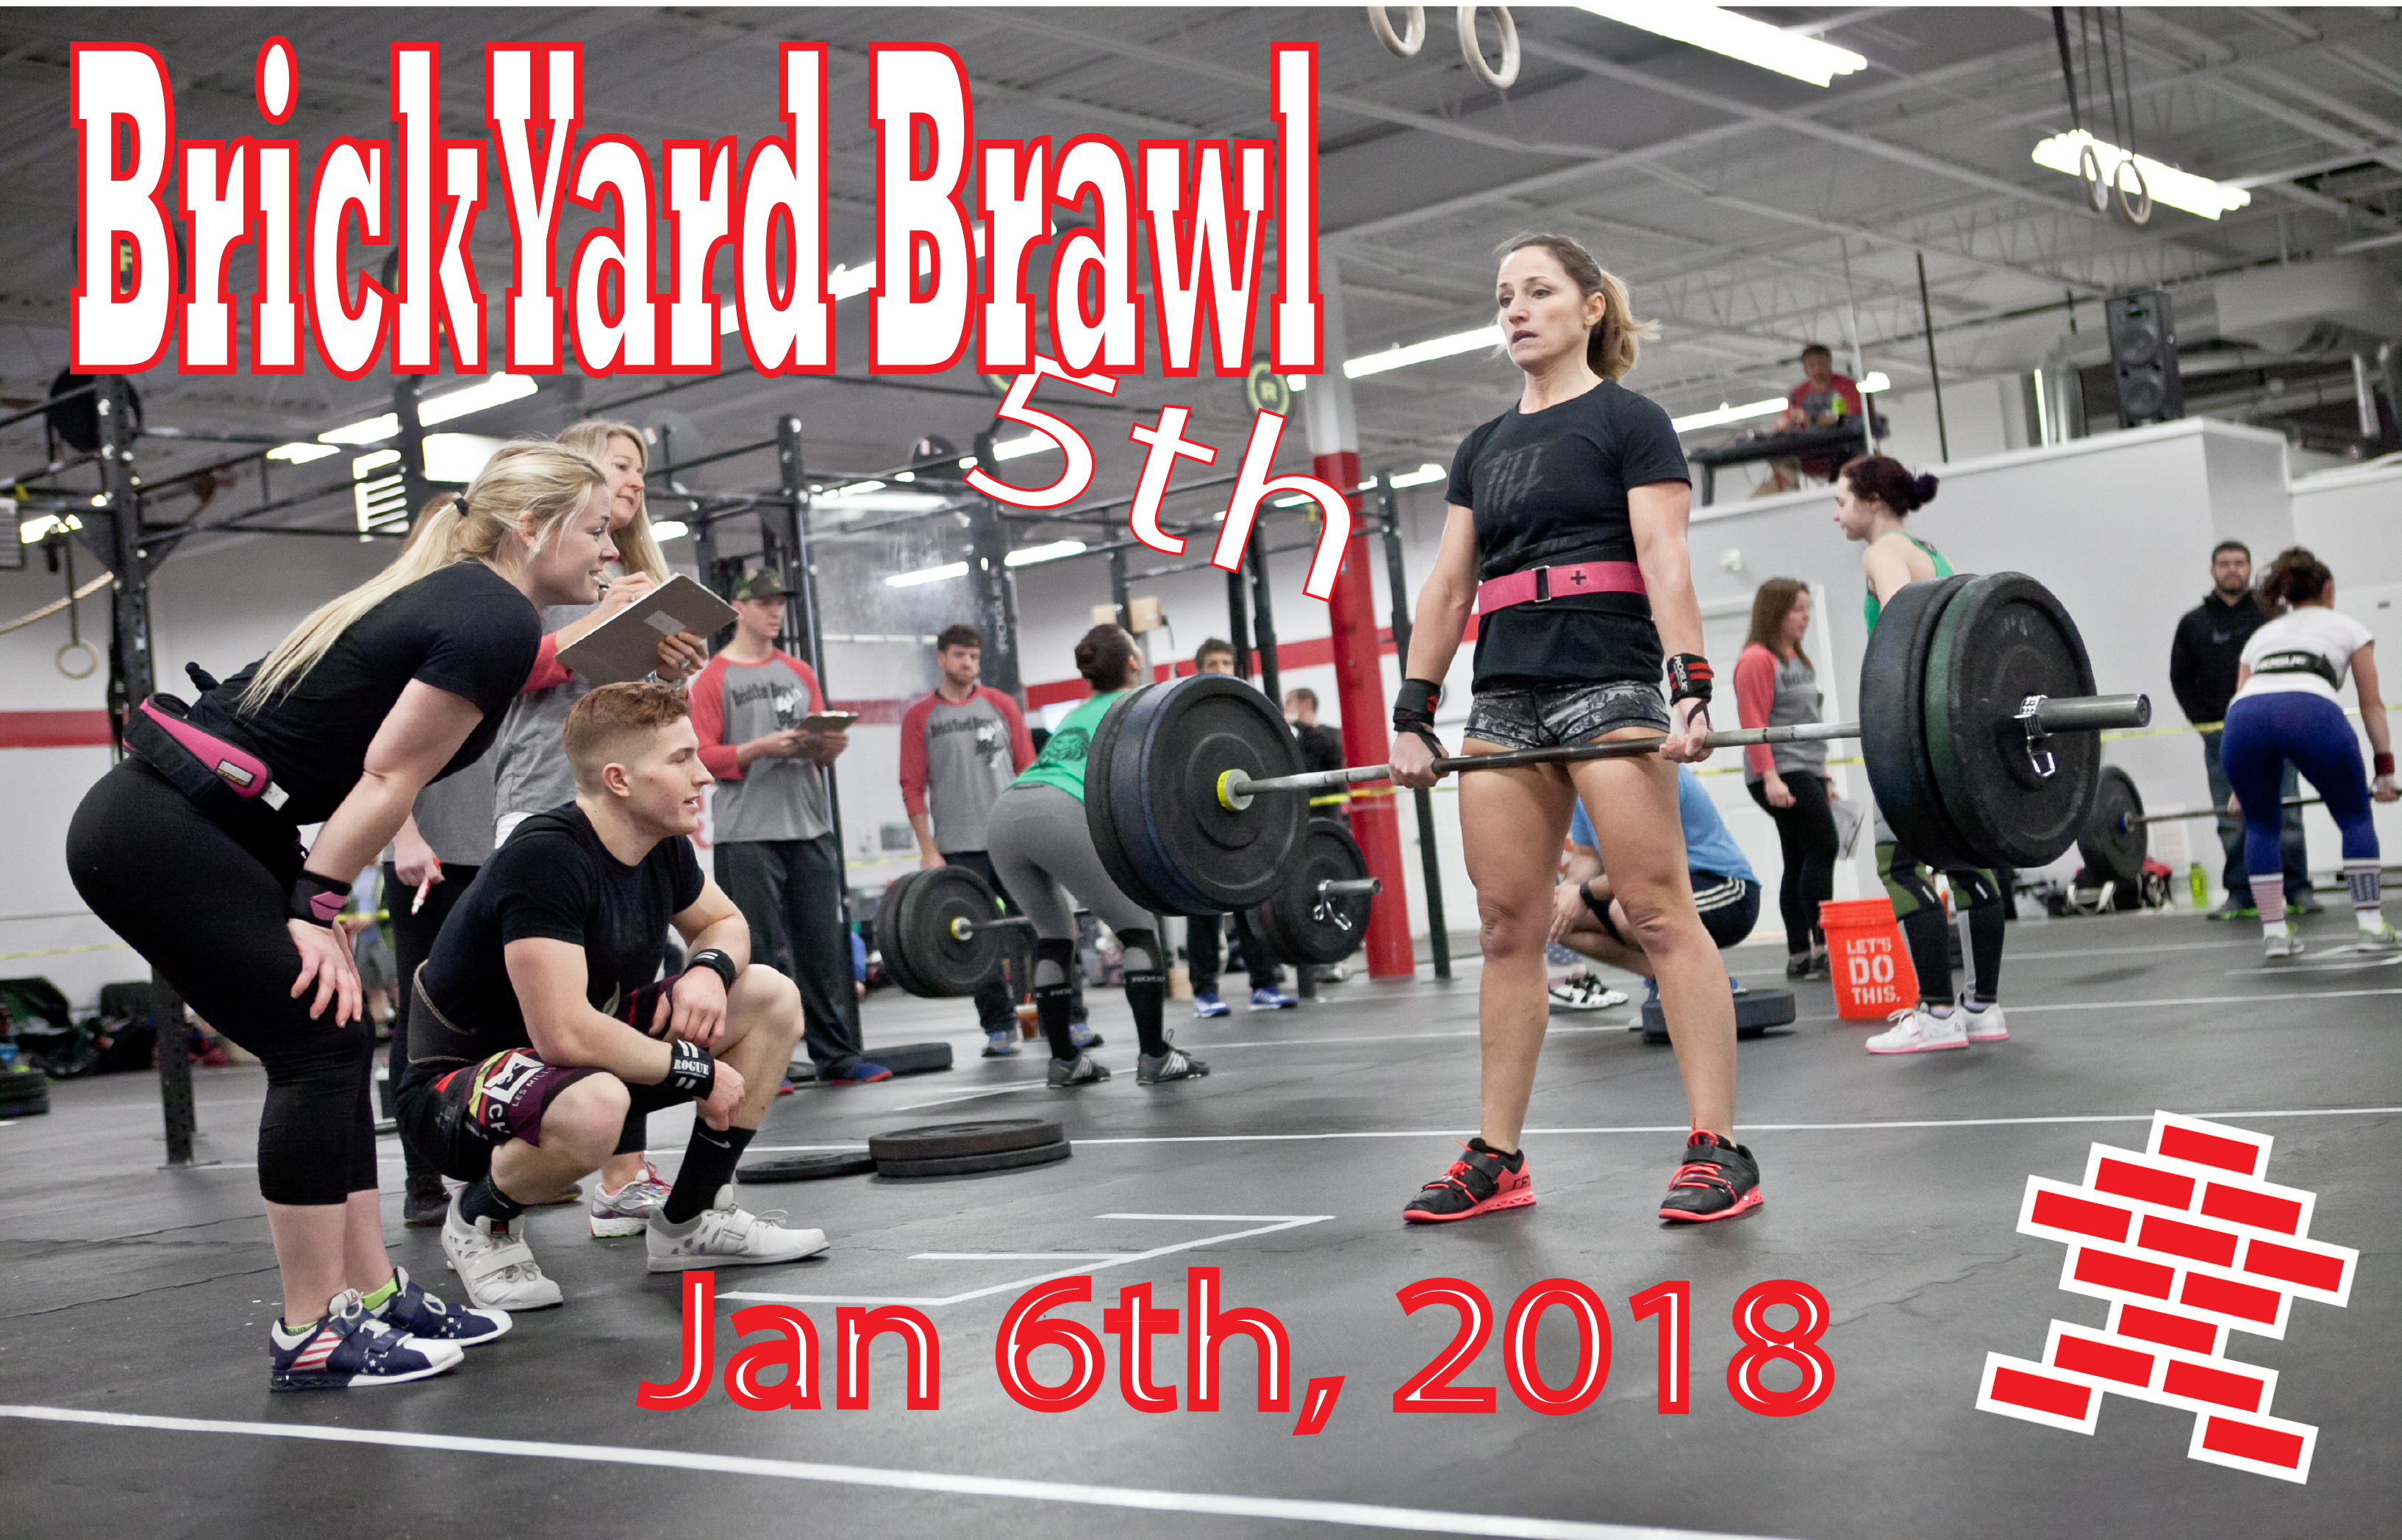 BrickYard Brawl #long,strong, and fancy